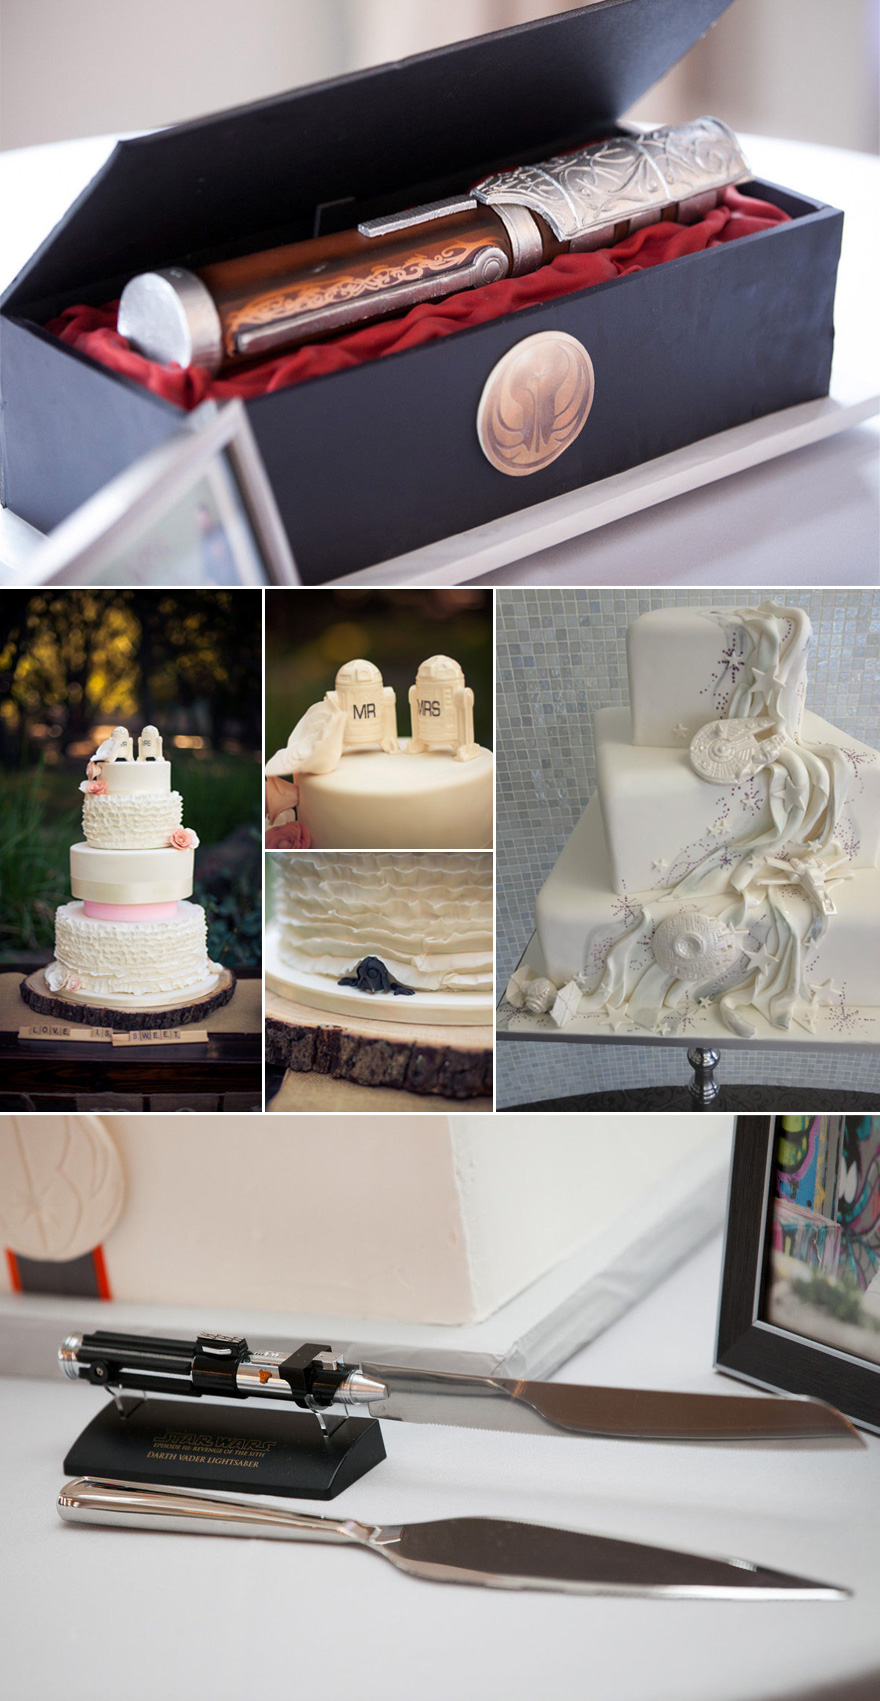 Star Wars Wedding Cake Ideas Lightsaber Wedding Cake R2D2 Cake Topper with Roses and Peeking Darth Vader Millennium Falcon Wedding Cake with Death Star Tie Fighters and X Wings and Lightsaber Cake Knife Cake Serving Set | Confetti.co.uk